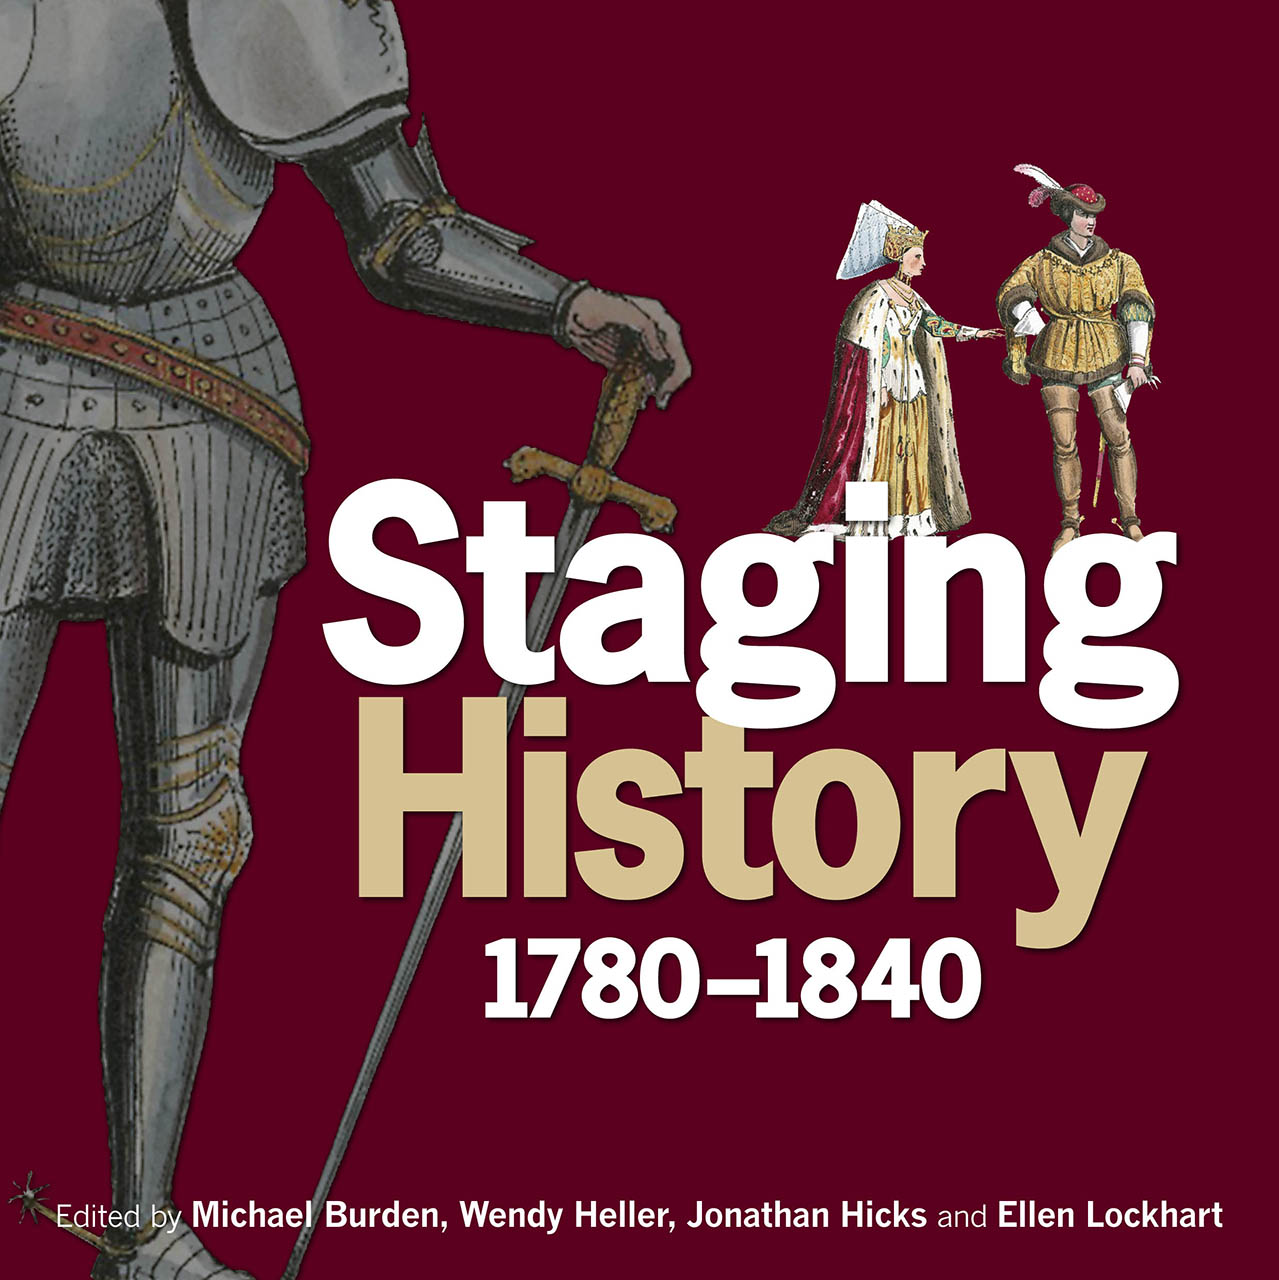 Staging History: 1780-1840